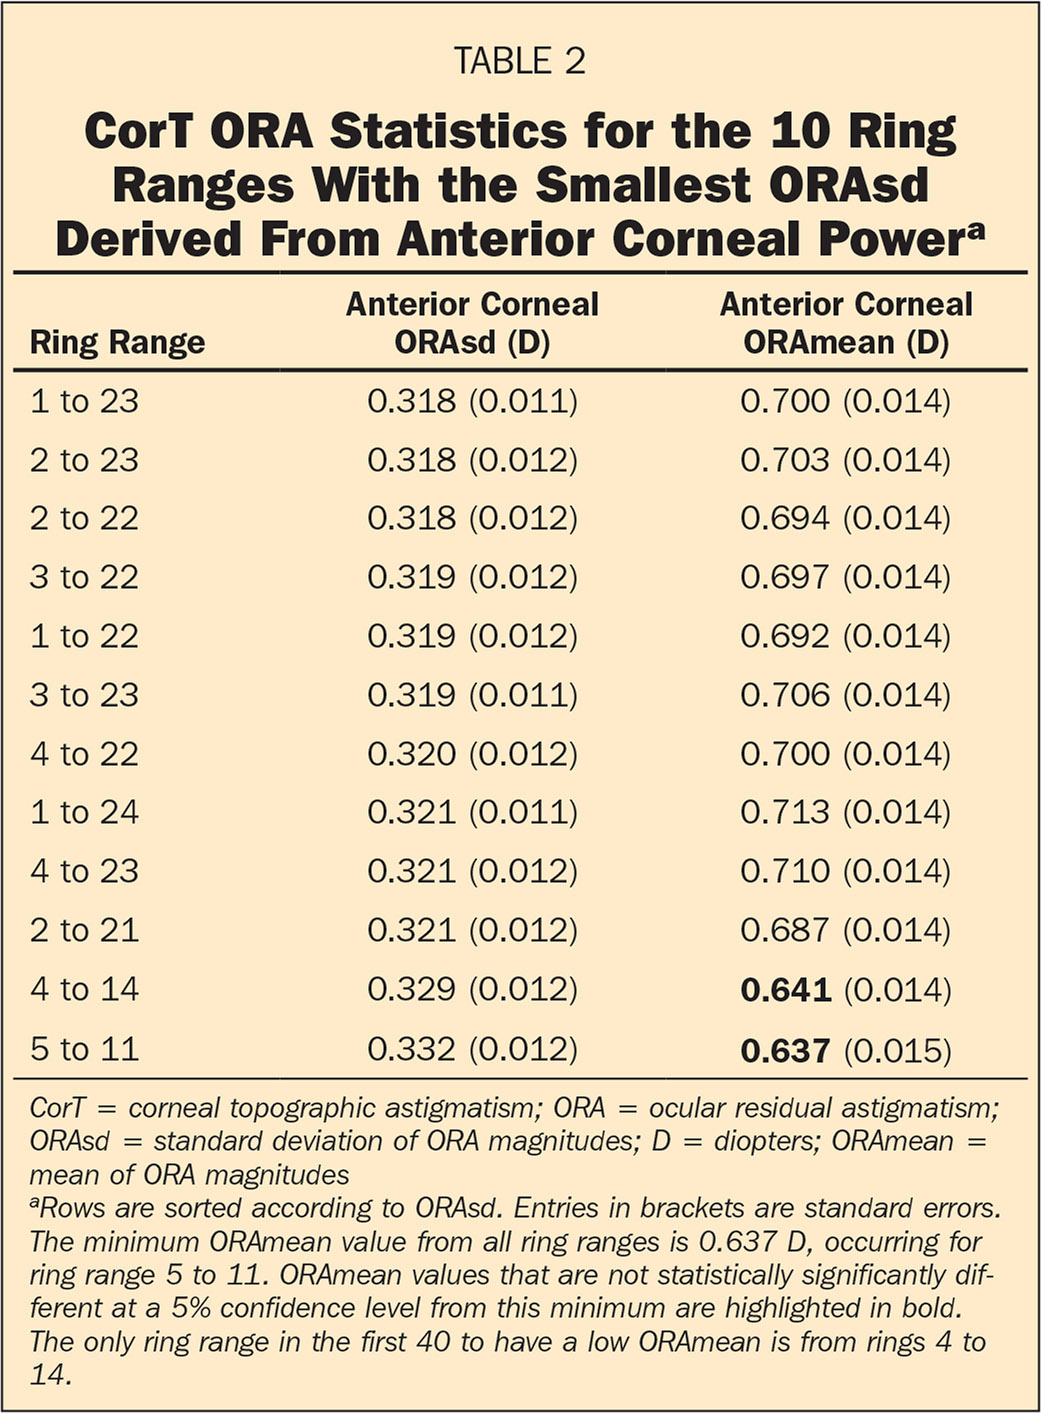 CorT ORA Statistics for the 10 Ring Ranges With the Smallest ORAsd Derived From Anterior Corneal Powera